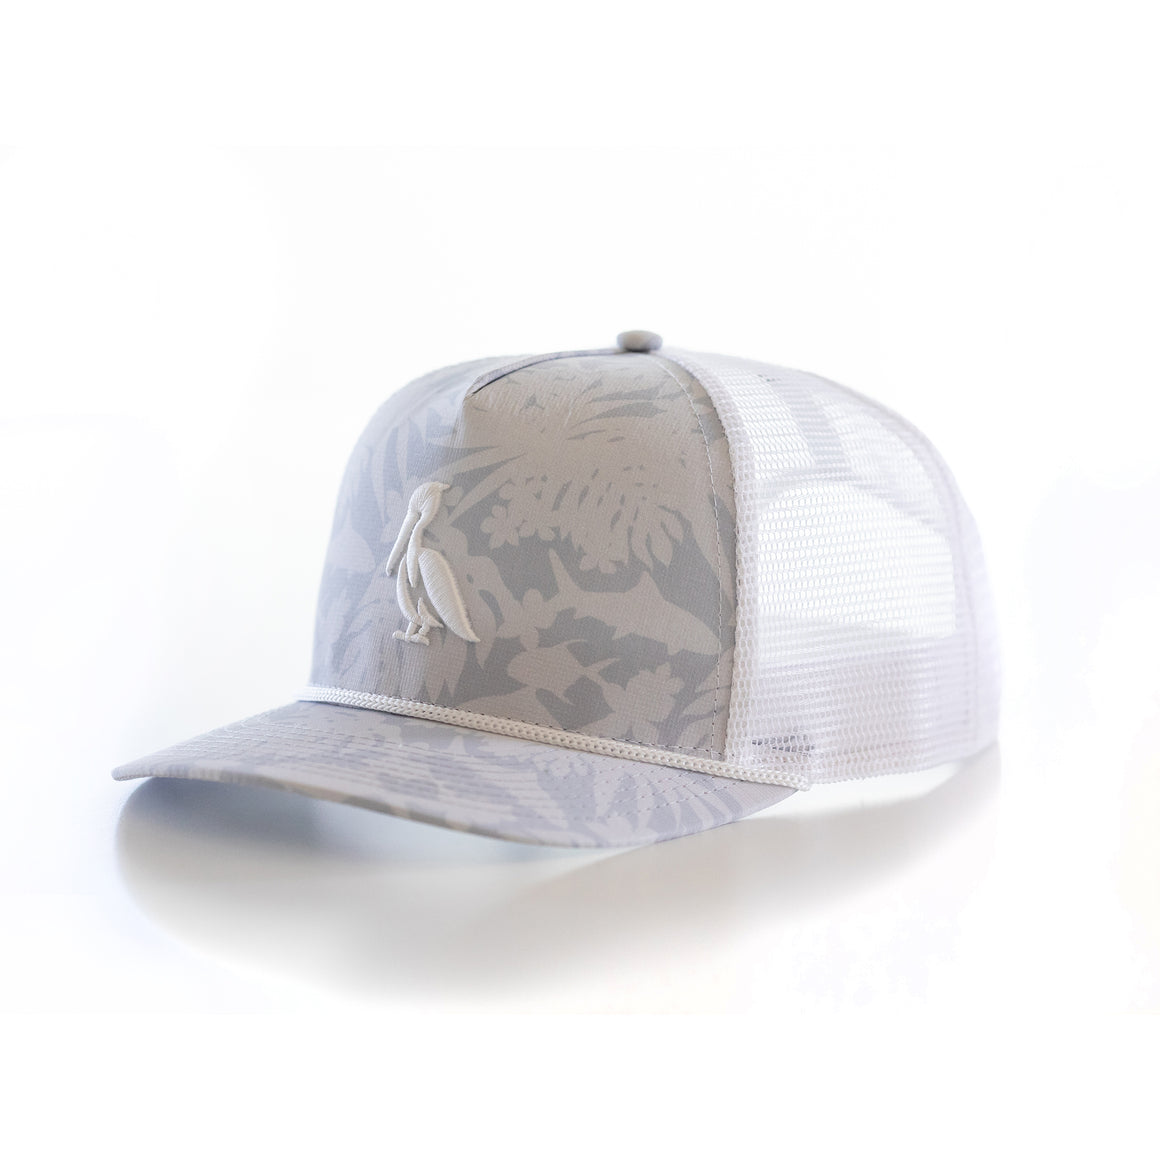 Marquesa Trucker Limited Edition - Gray / White